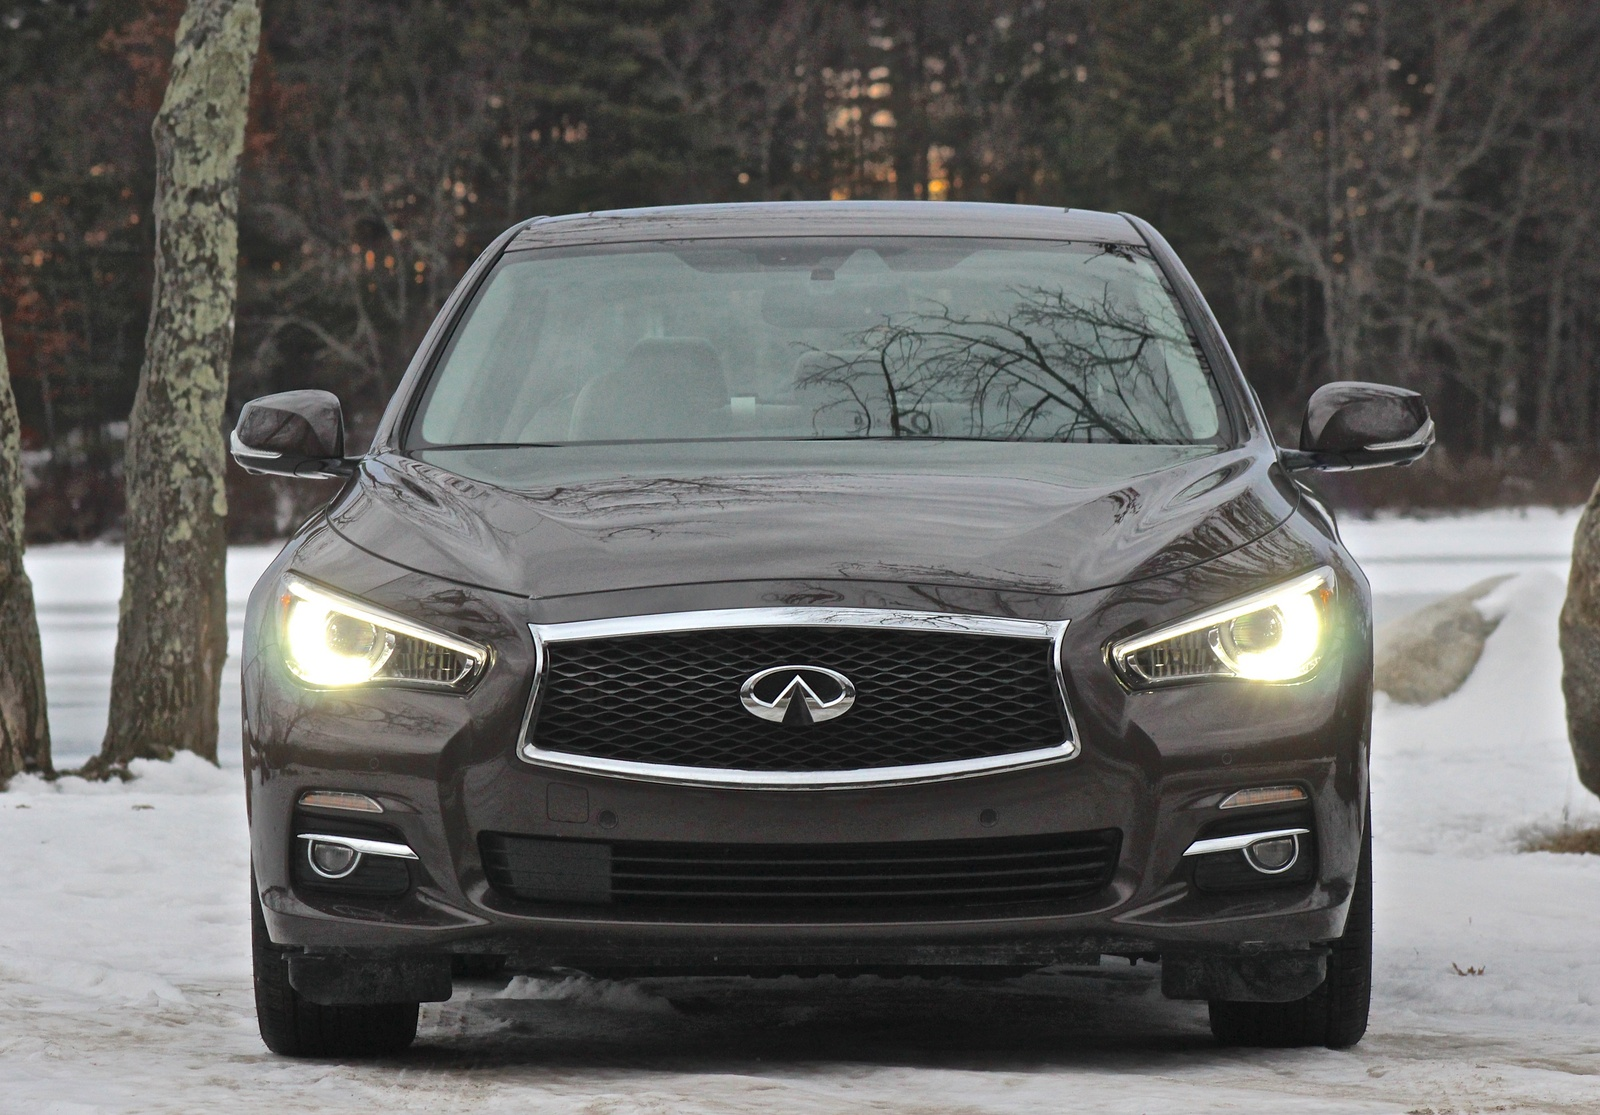 Front view of the 2014 Infiniti Q50